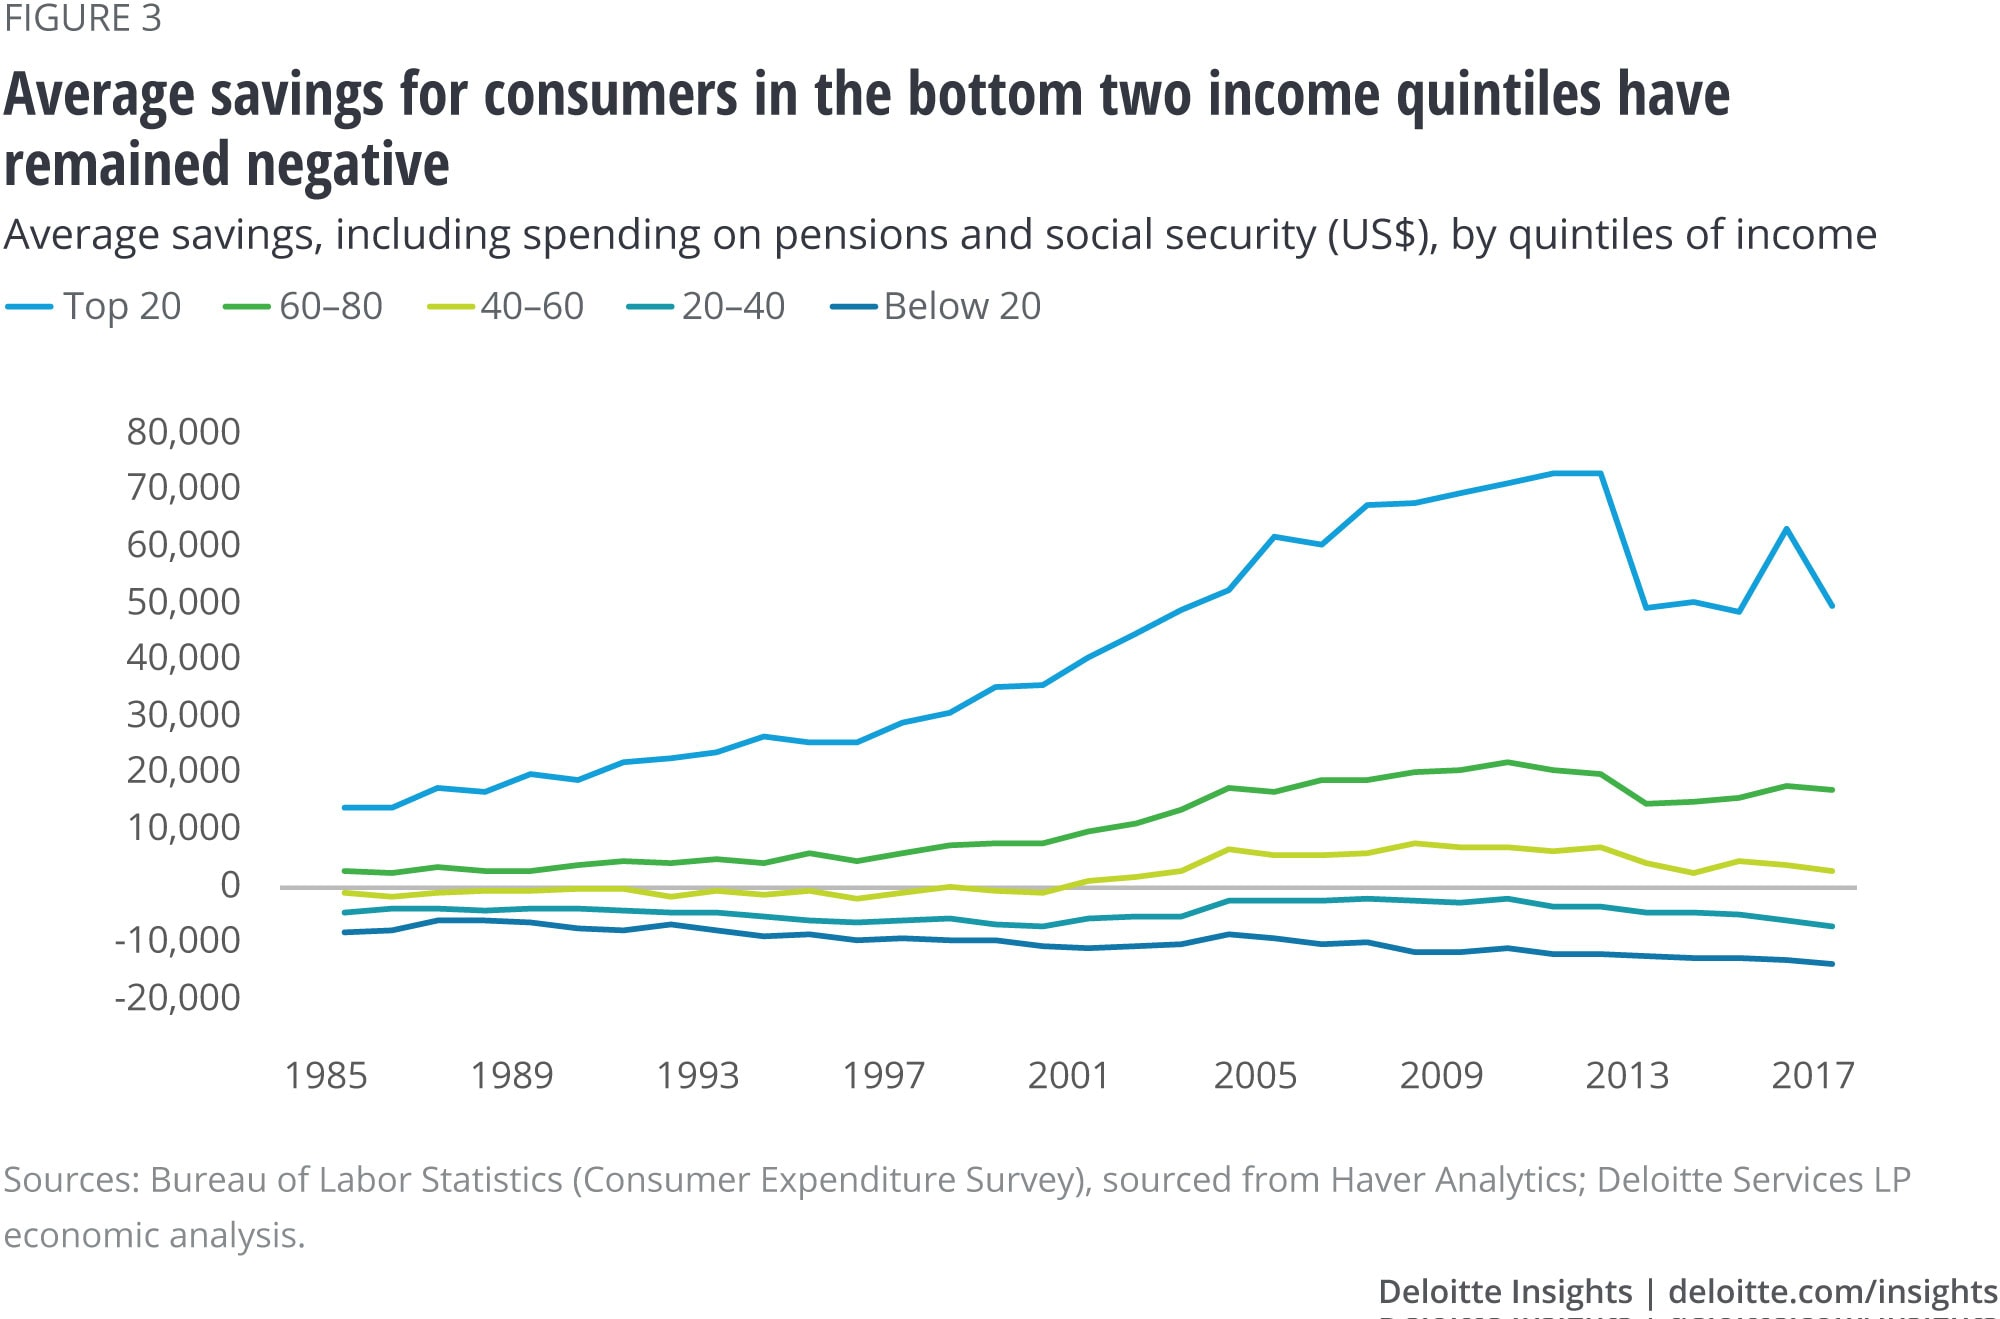 Average savings for consumers in the bottom two income quintiles has remained negative